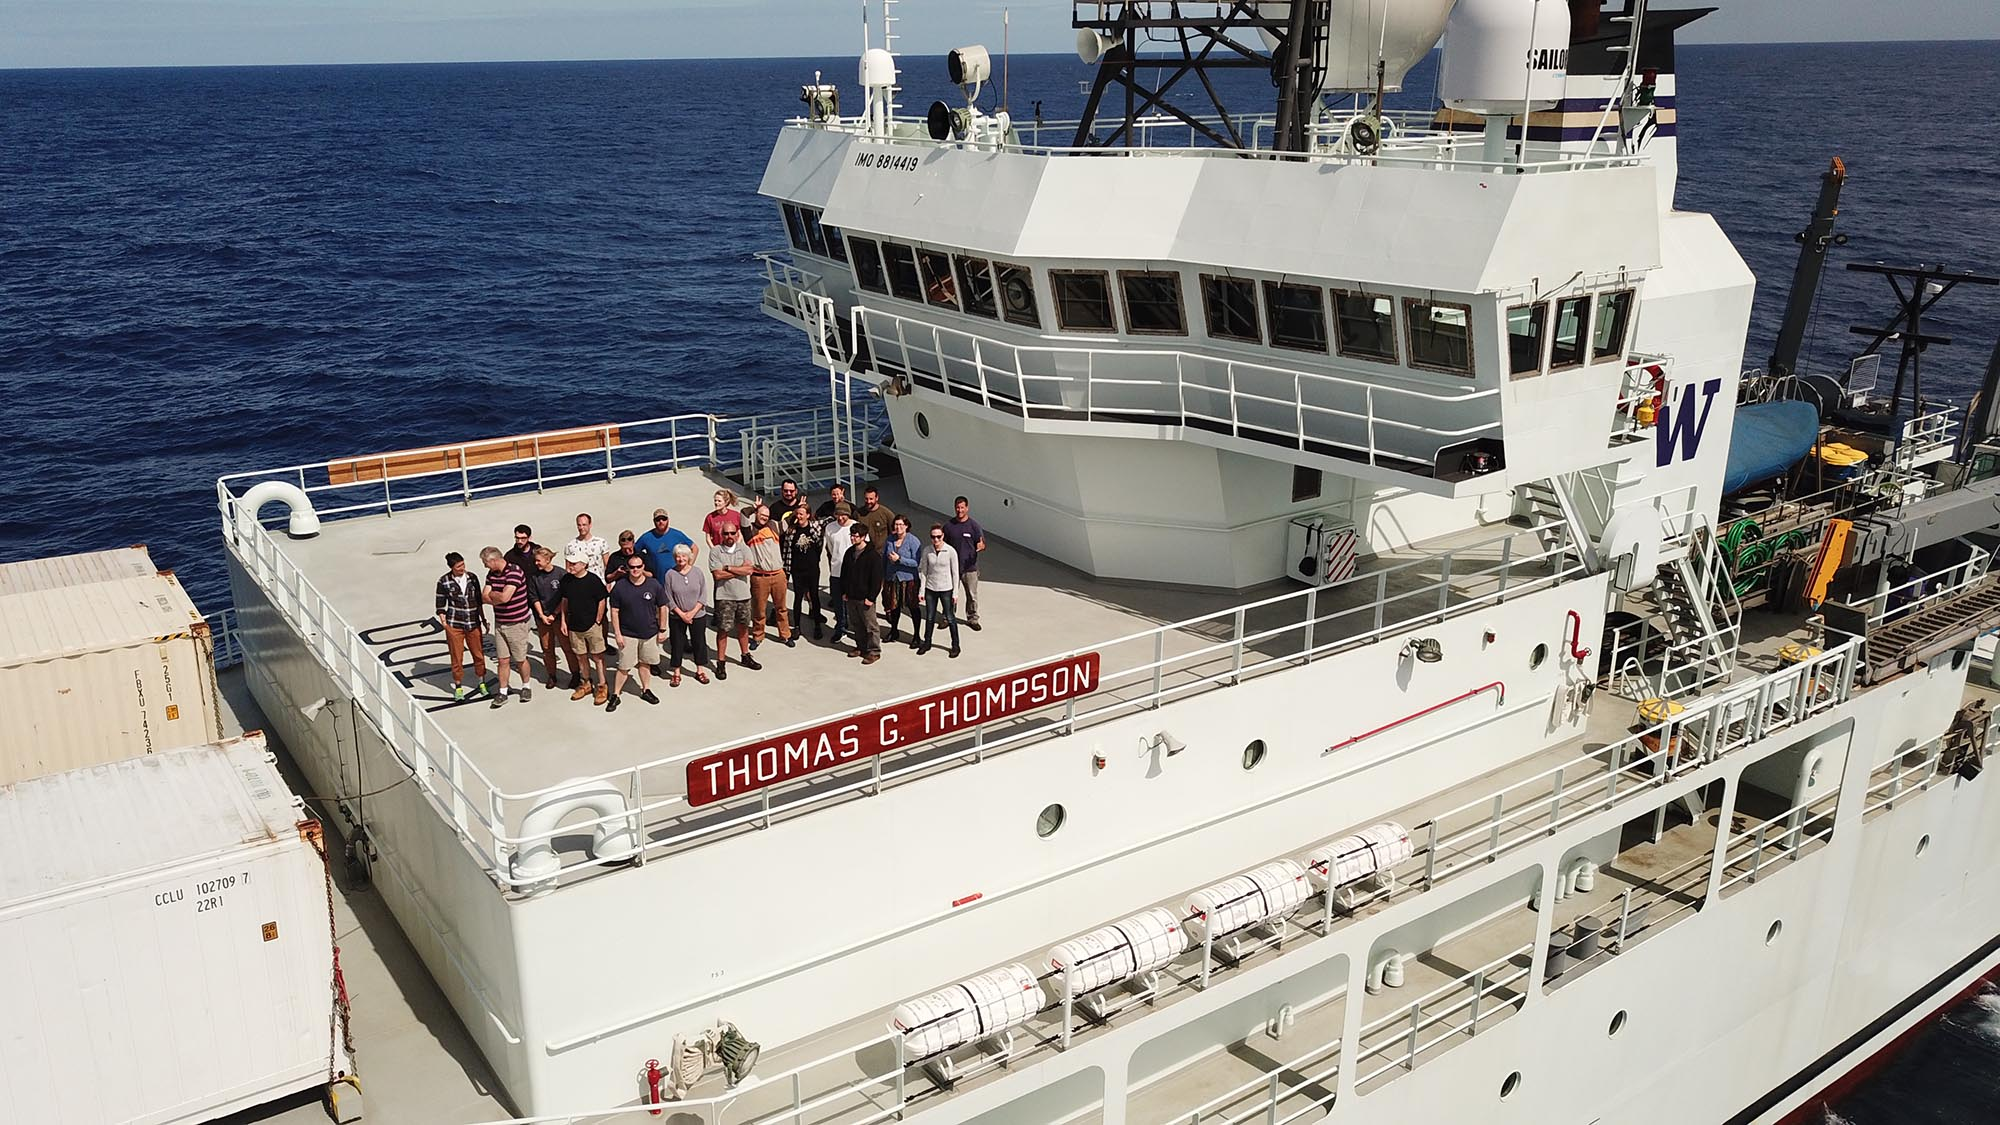 The science team on the Brothers volcano expedition takes time out from packing their gear for a team photo on the upper deck of R/V Thomas G. Thompson. (Photo by Erik Olsen)